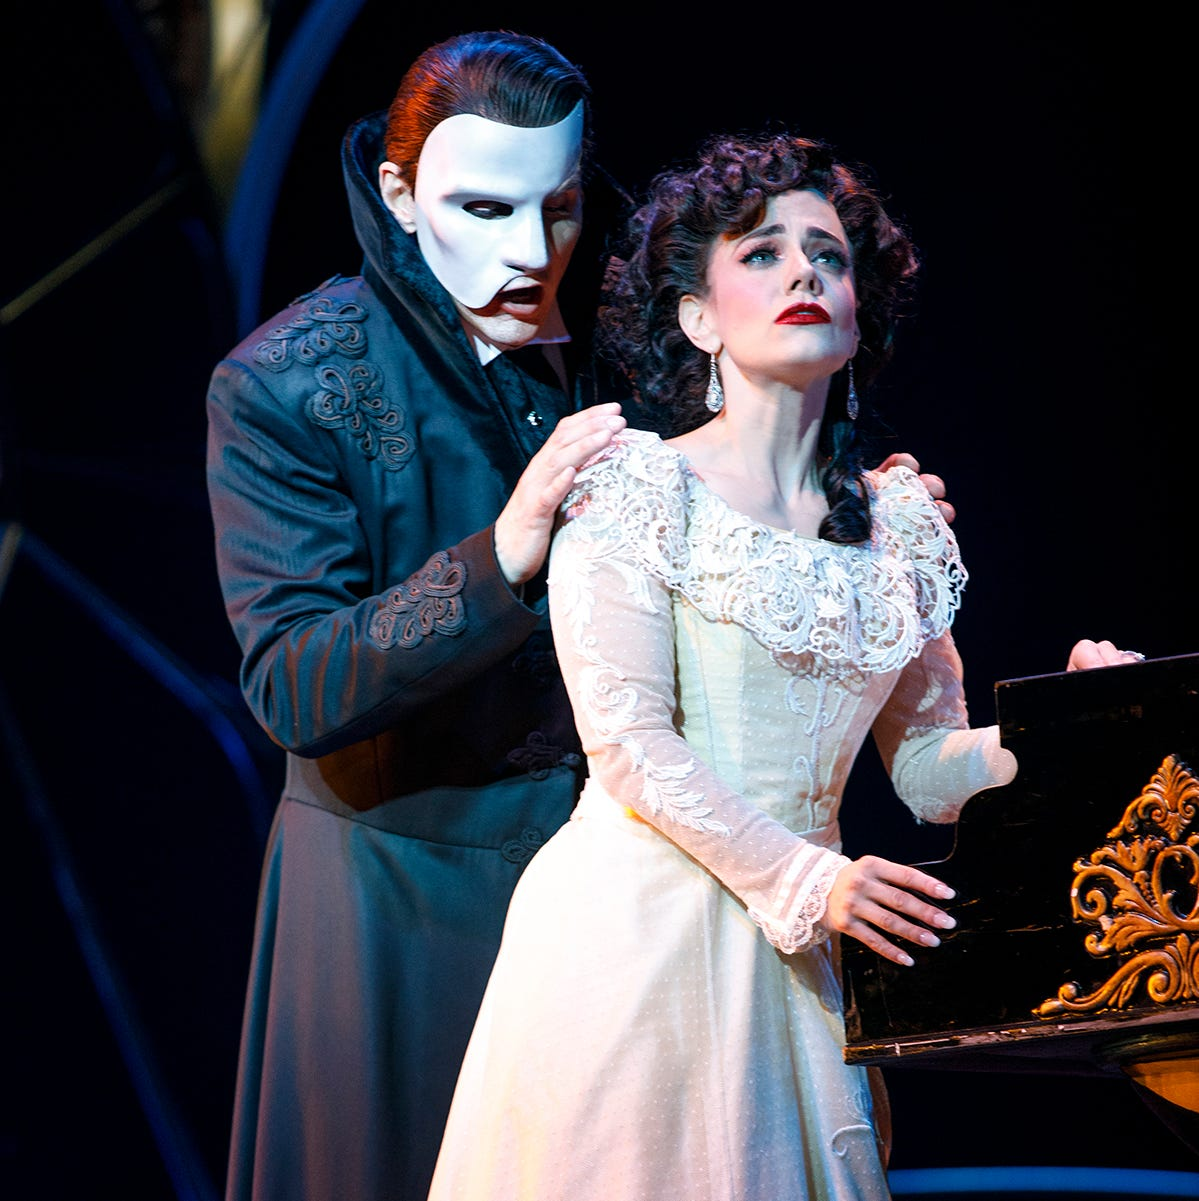 'Phantom of the Opera' sequel comes to Des Moines Oct. 16-21